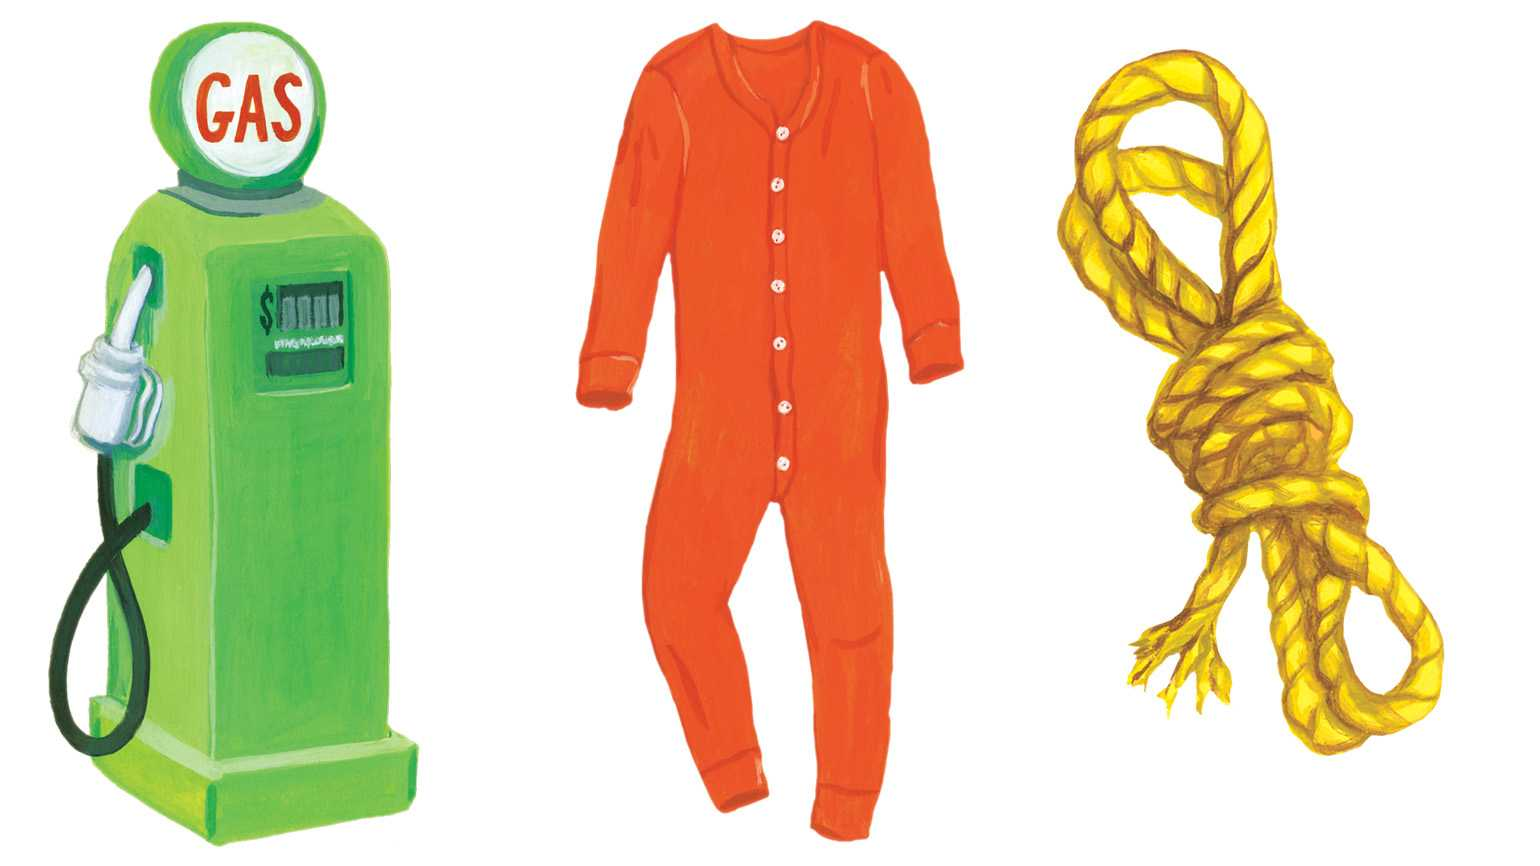 Gas tank, Long Johns, and a bundle of rope; Illustrations by Jessica Allen